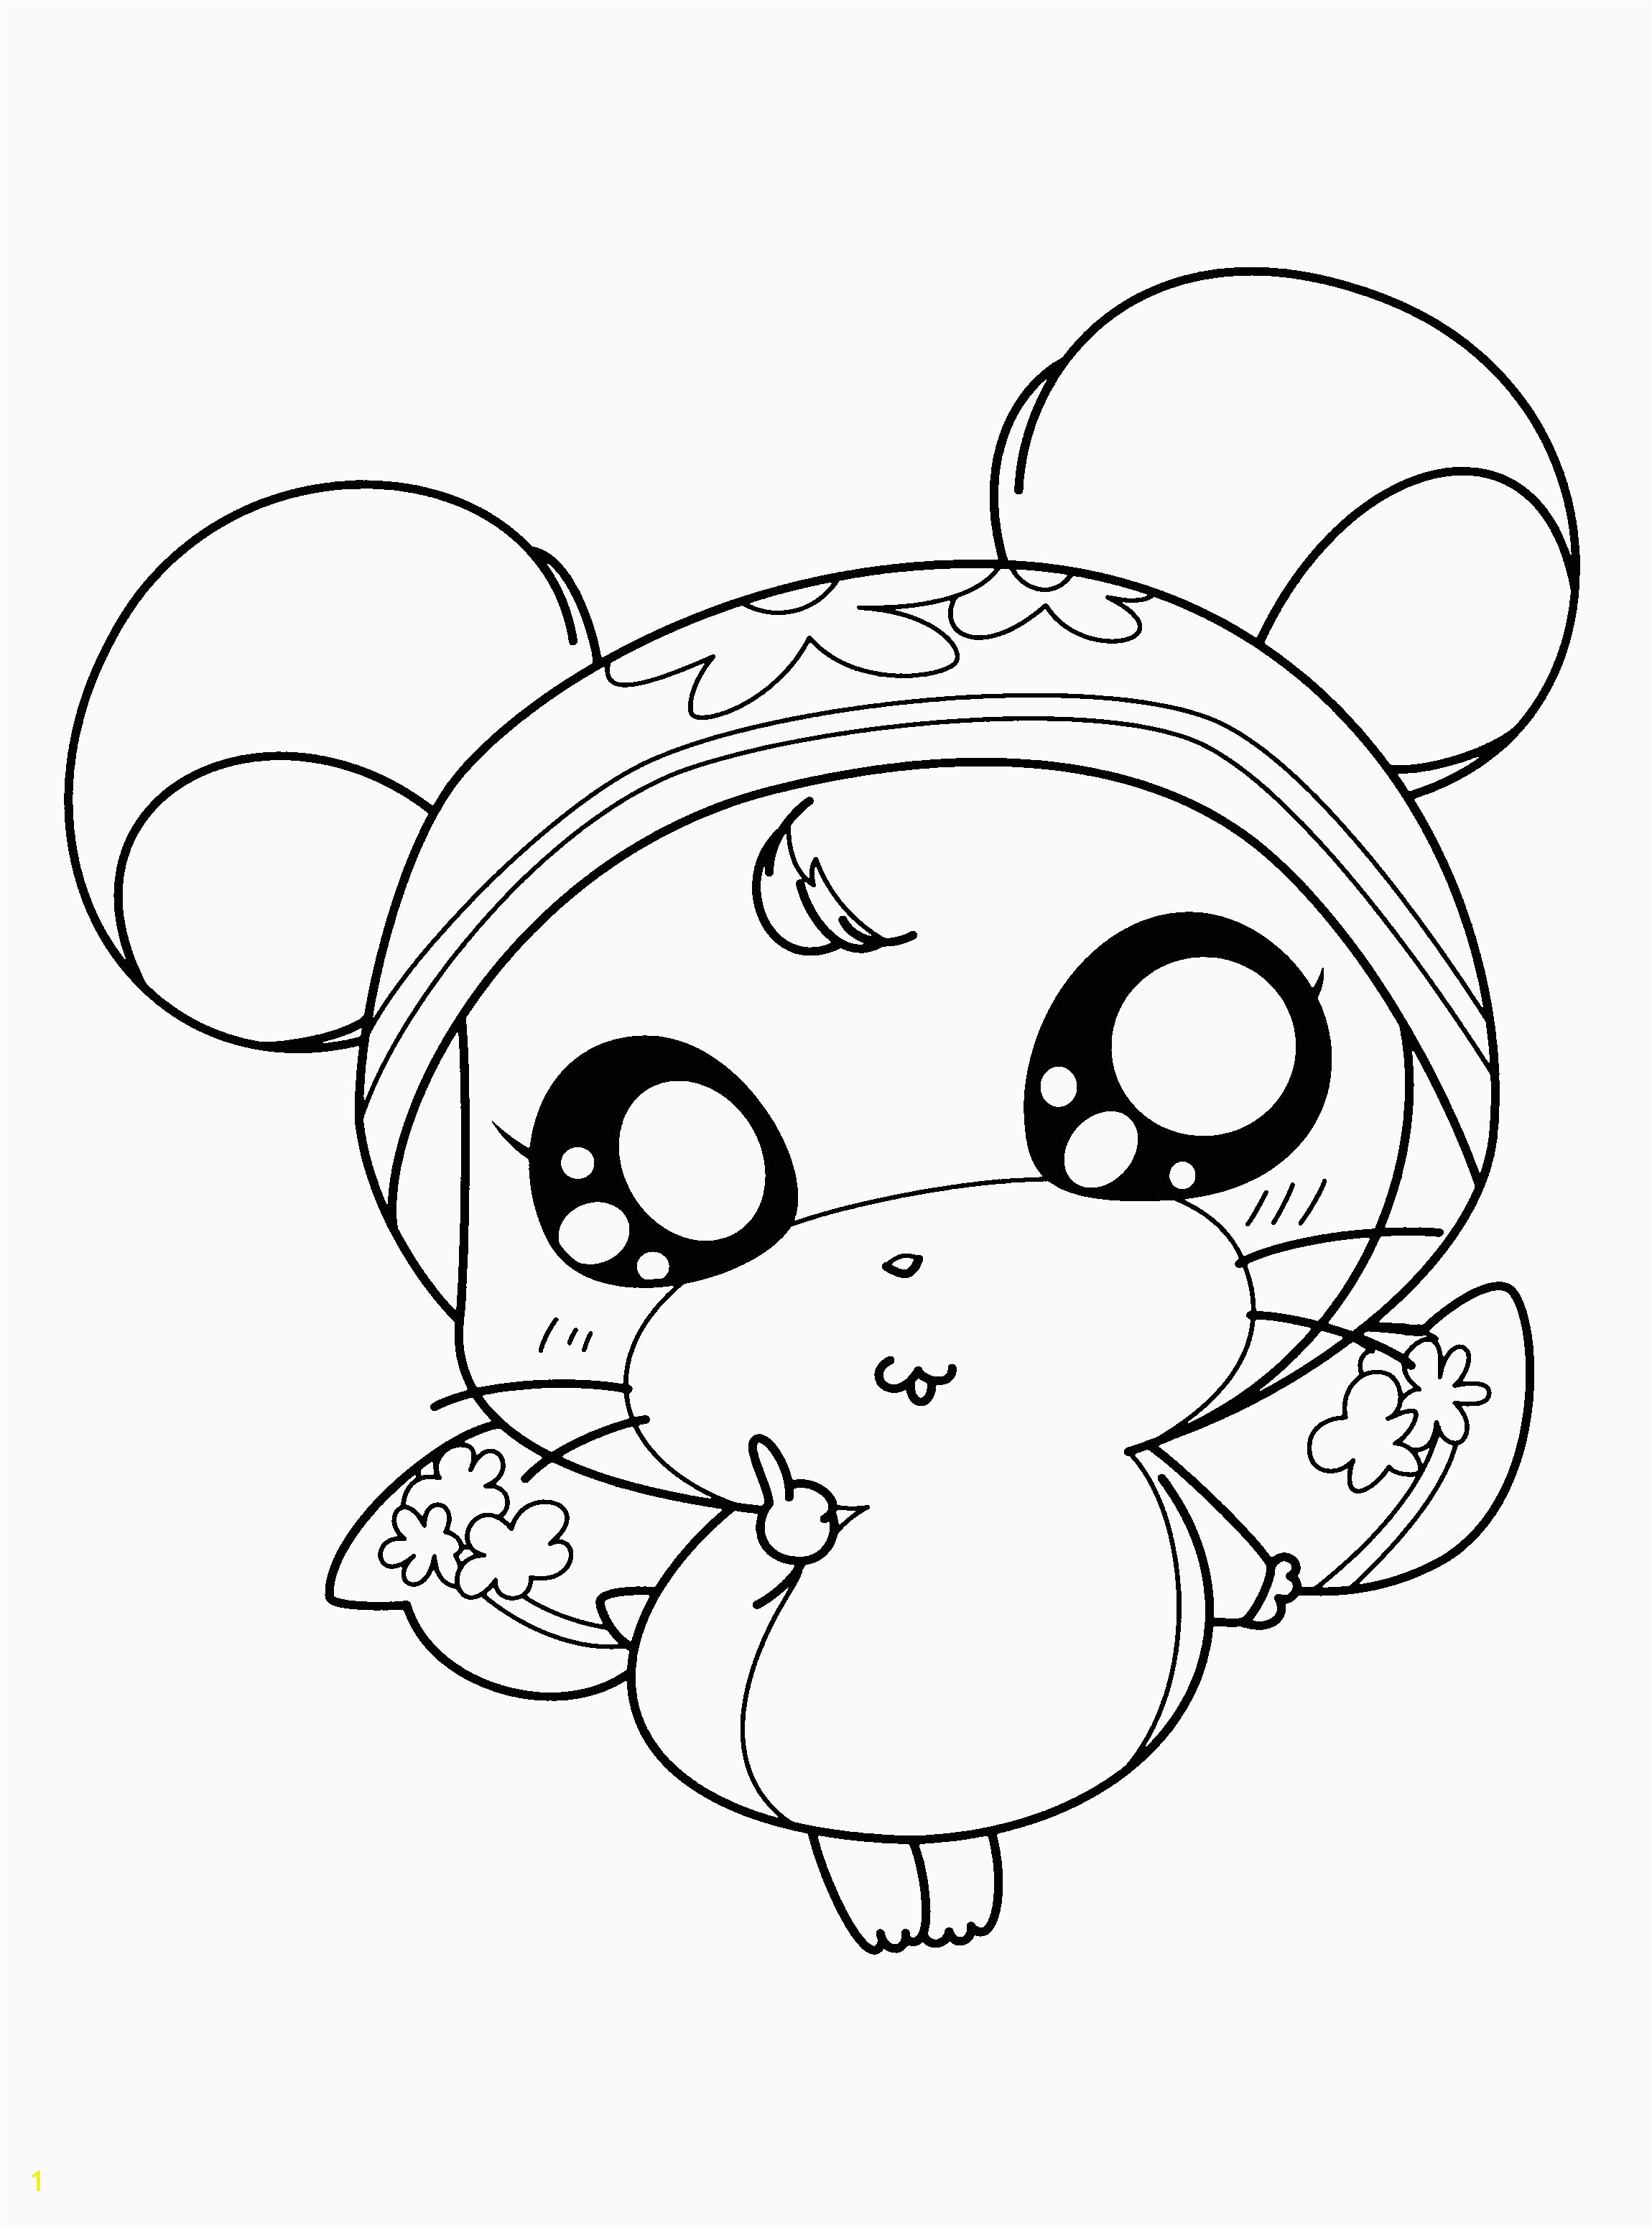 Coloring Pages Angry Birds Fresh Angry Birds Friends Coloring Pages Katesgrove